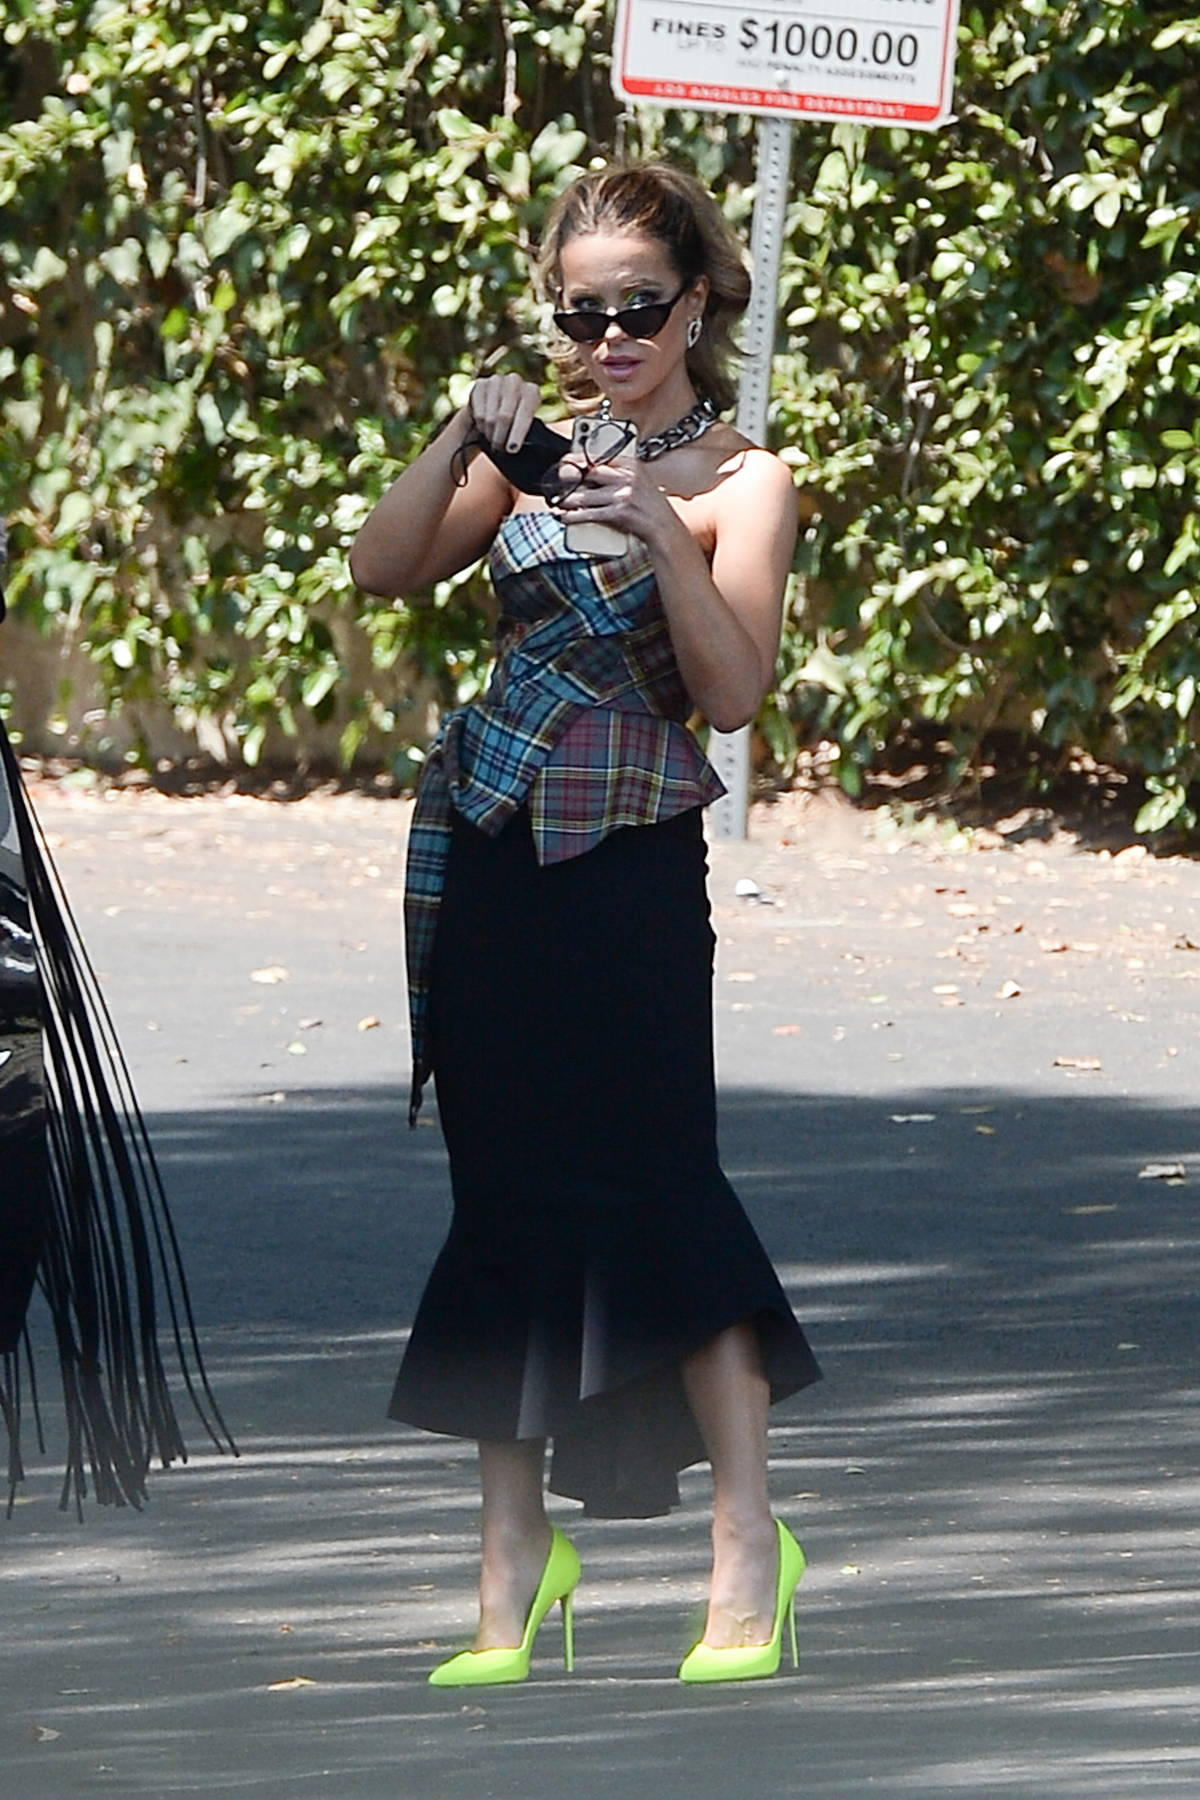 Kate Beckinsale looks stylish in a plaid top, black skirt with neon green shoes while heading out in Los Angeles